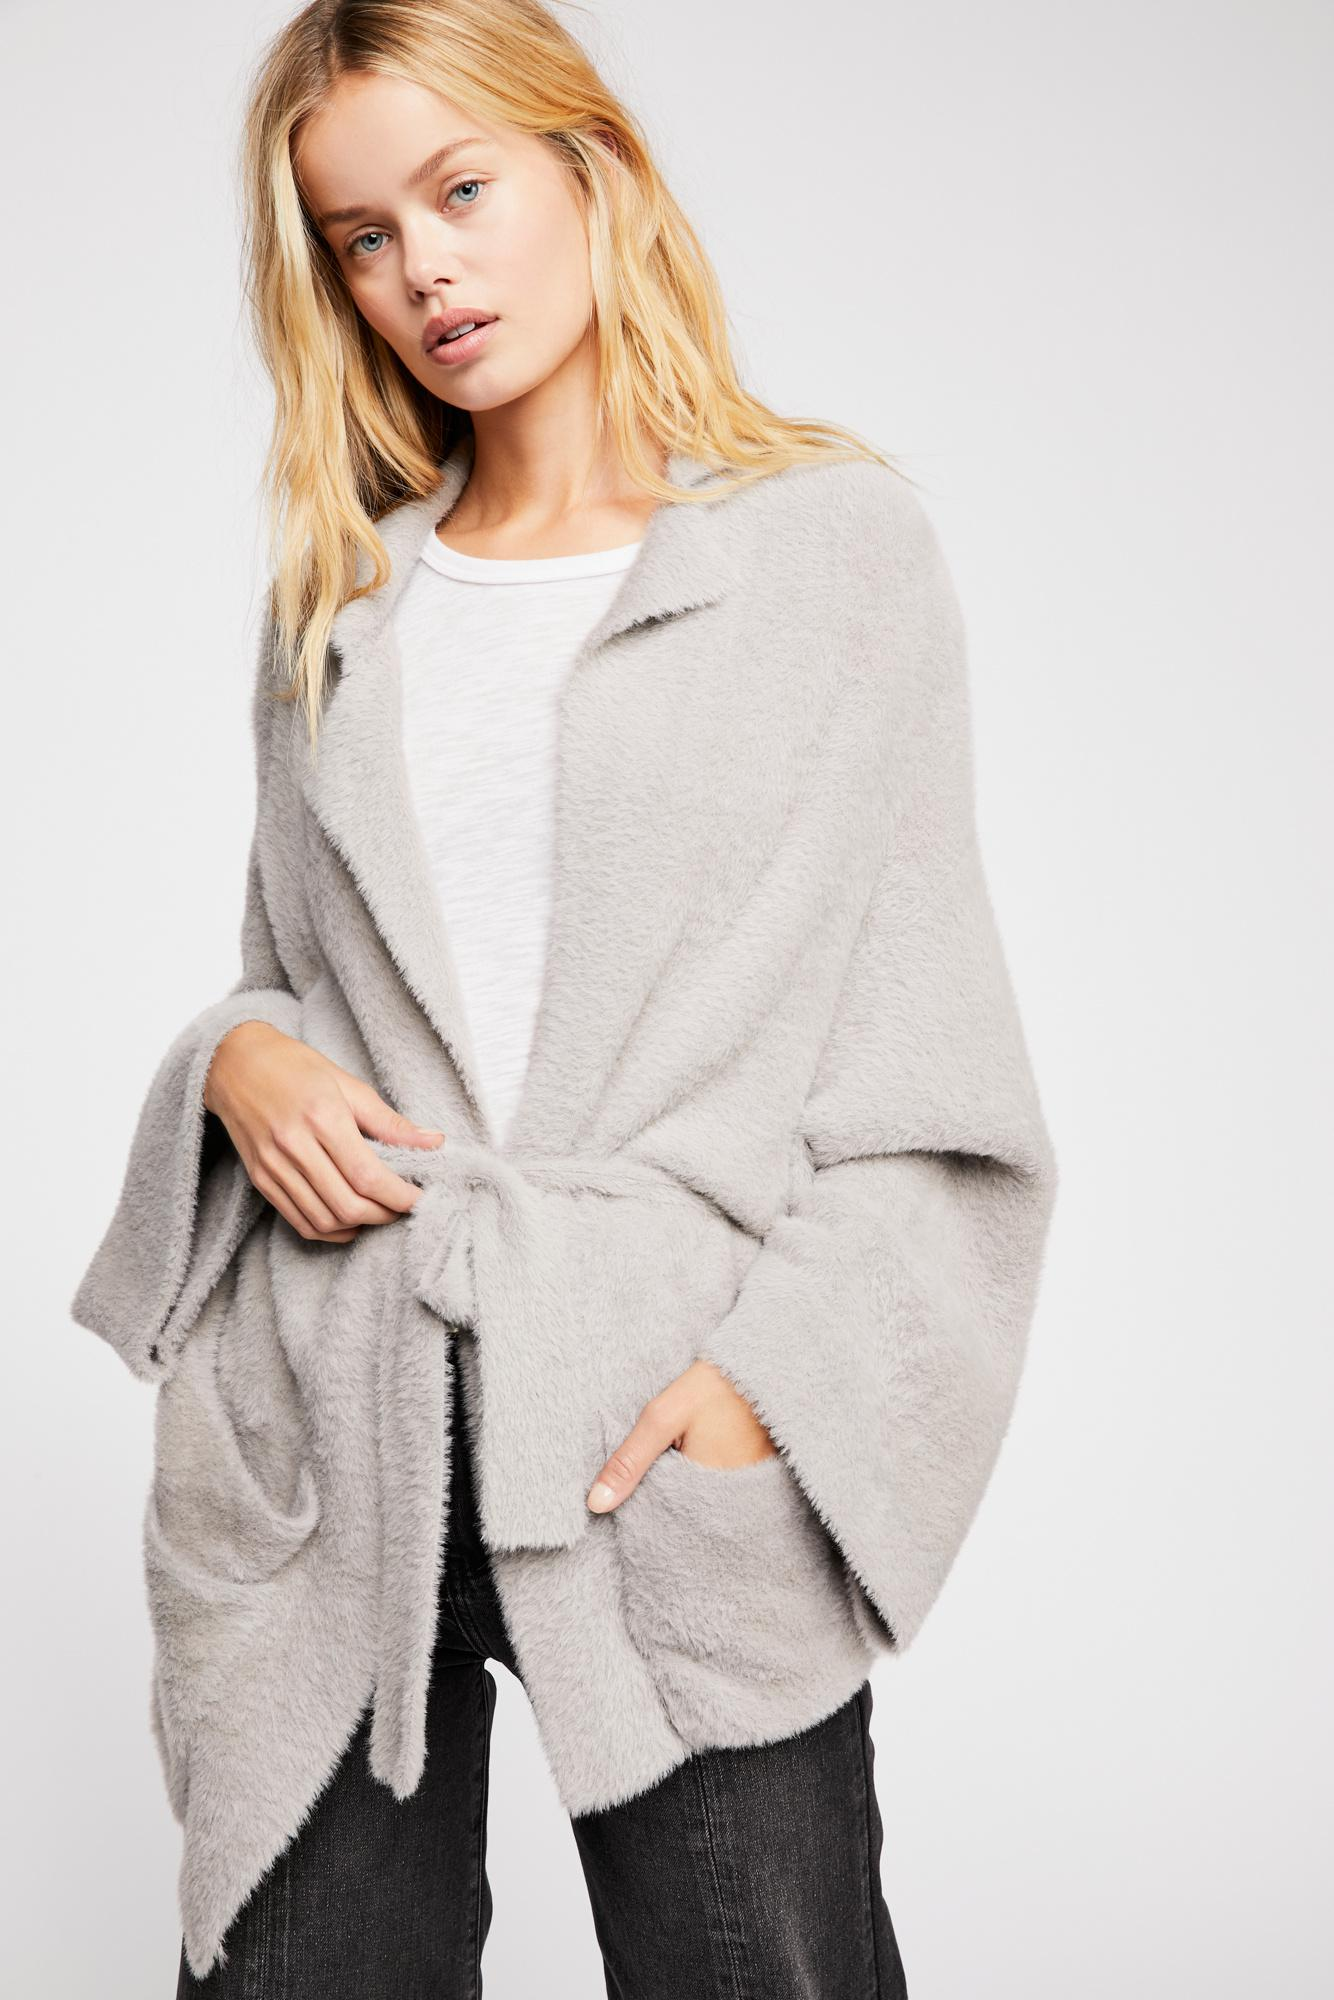 b206232ef9 Free People Fp One Jackson Wrap Sweater in Gray - Lyst